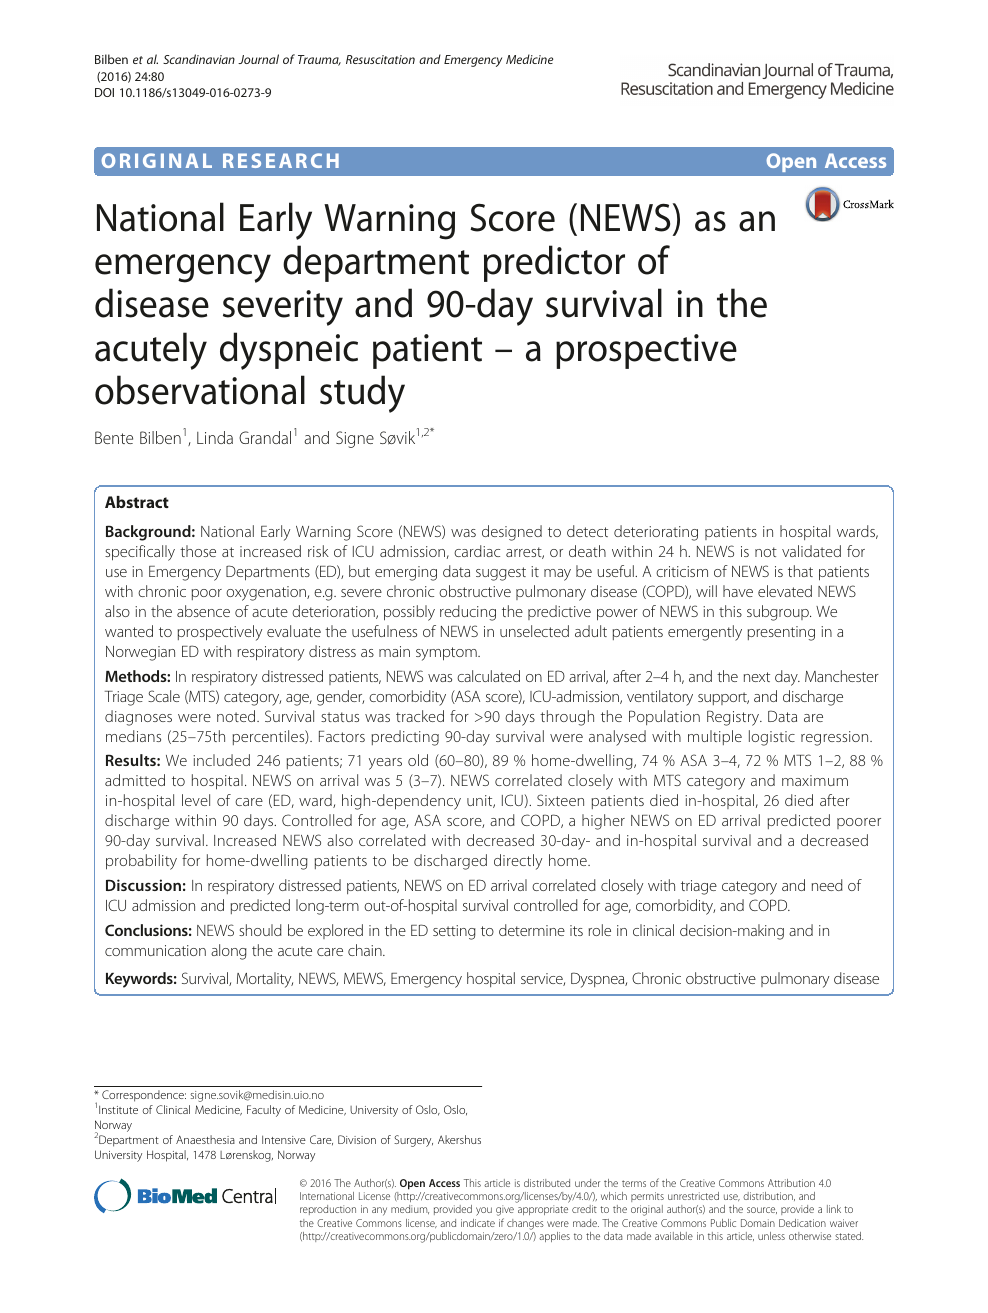 National Early Warning Score (NEWS) as an emergency department